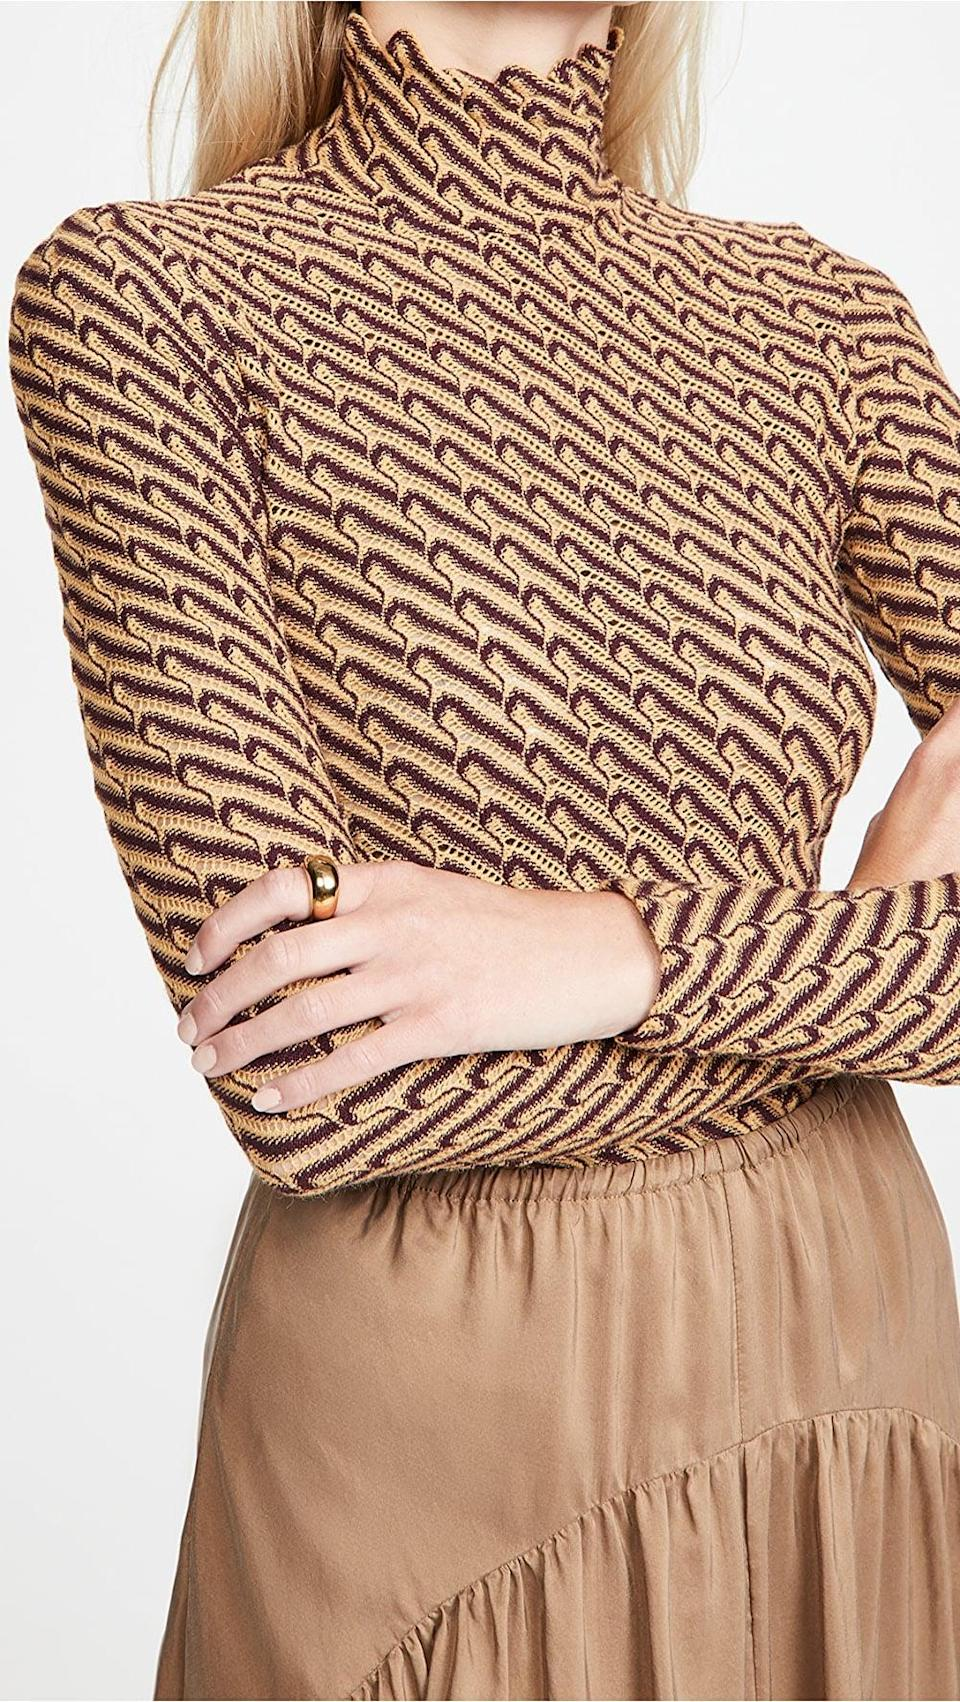 <p>Take a cue from the brand's styling and wear this <span>Beaufille Mena Turtleneck Top</span> ($333, originally $475) with a skirt of a similar color palette.</p>